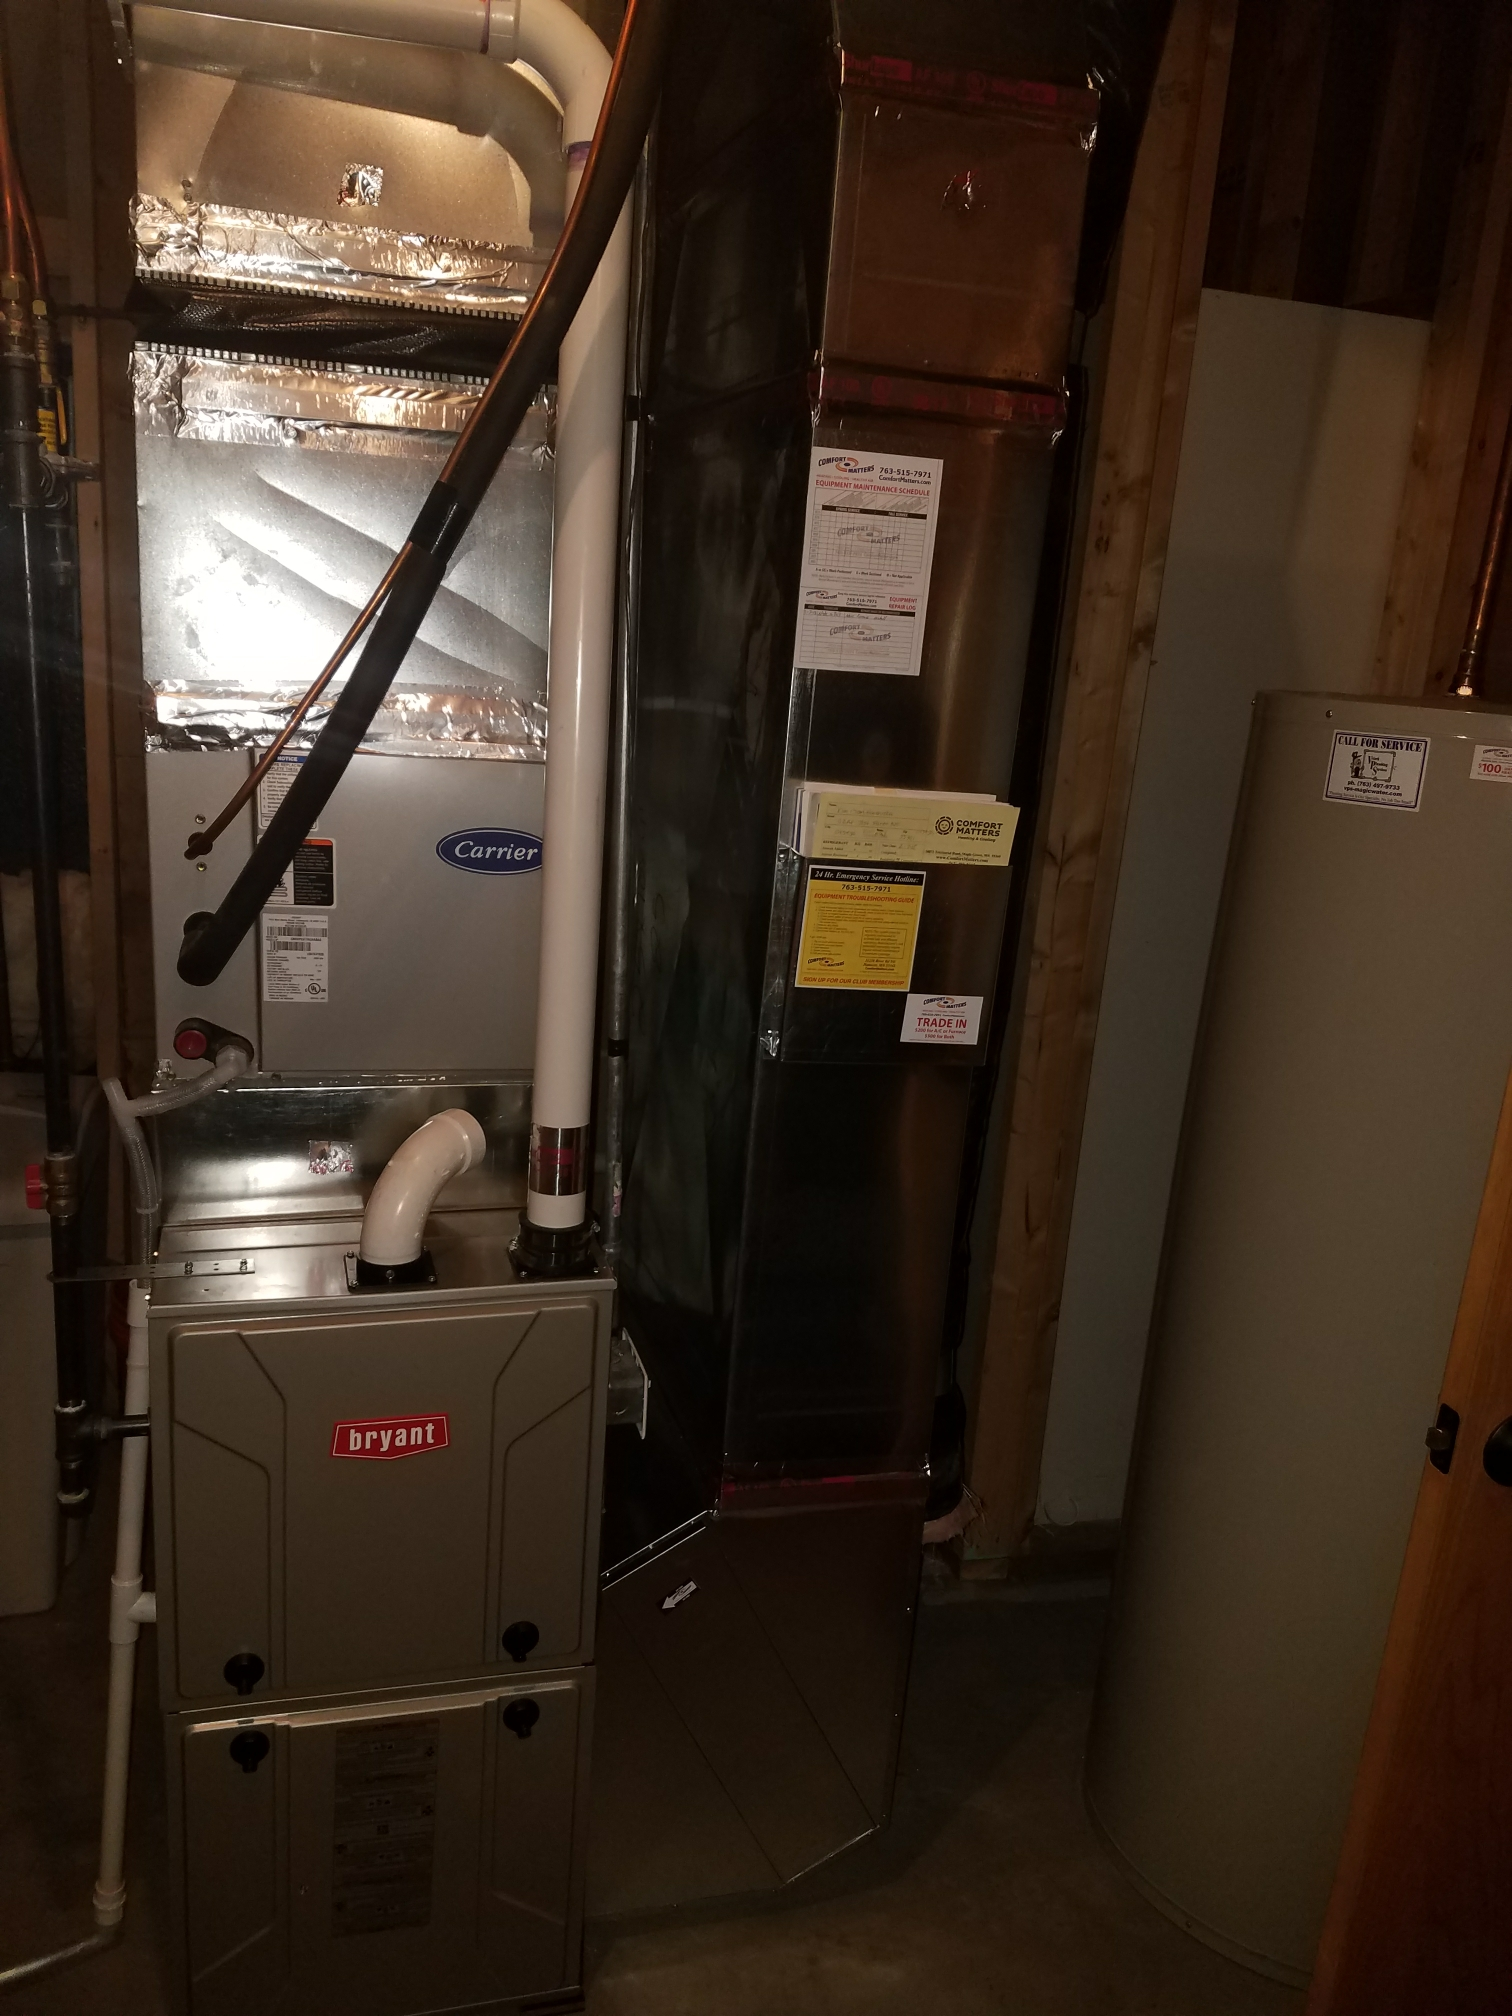 Maple Grove, MN - Install Bryant furnace under warranty due to plugged secondary heat exchanger